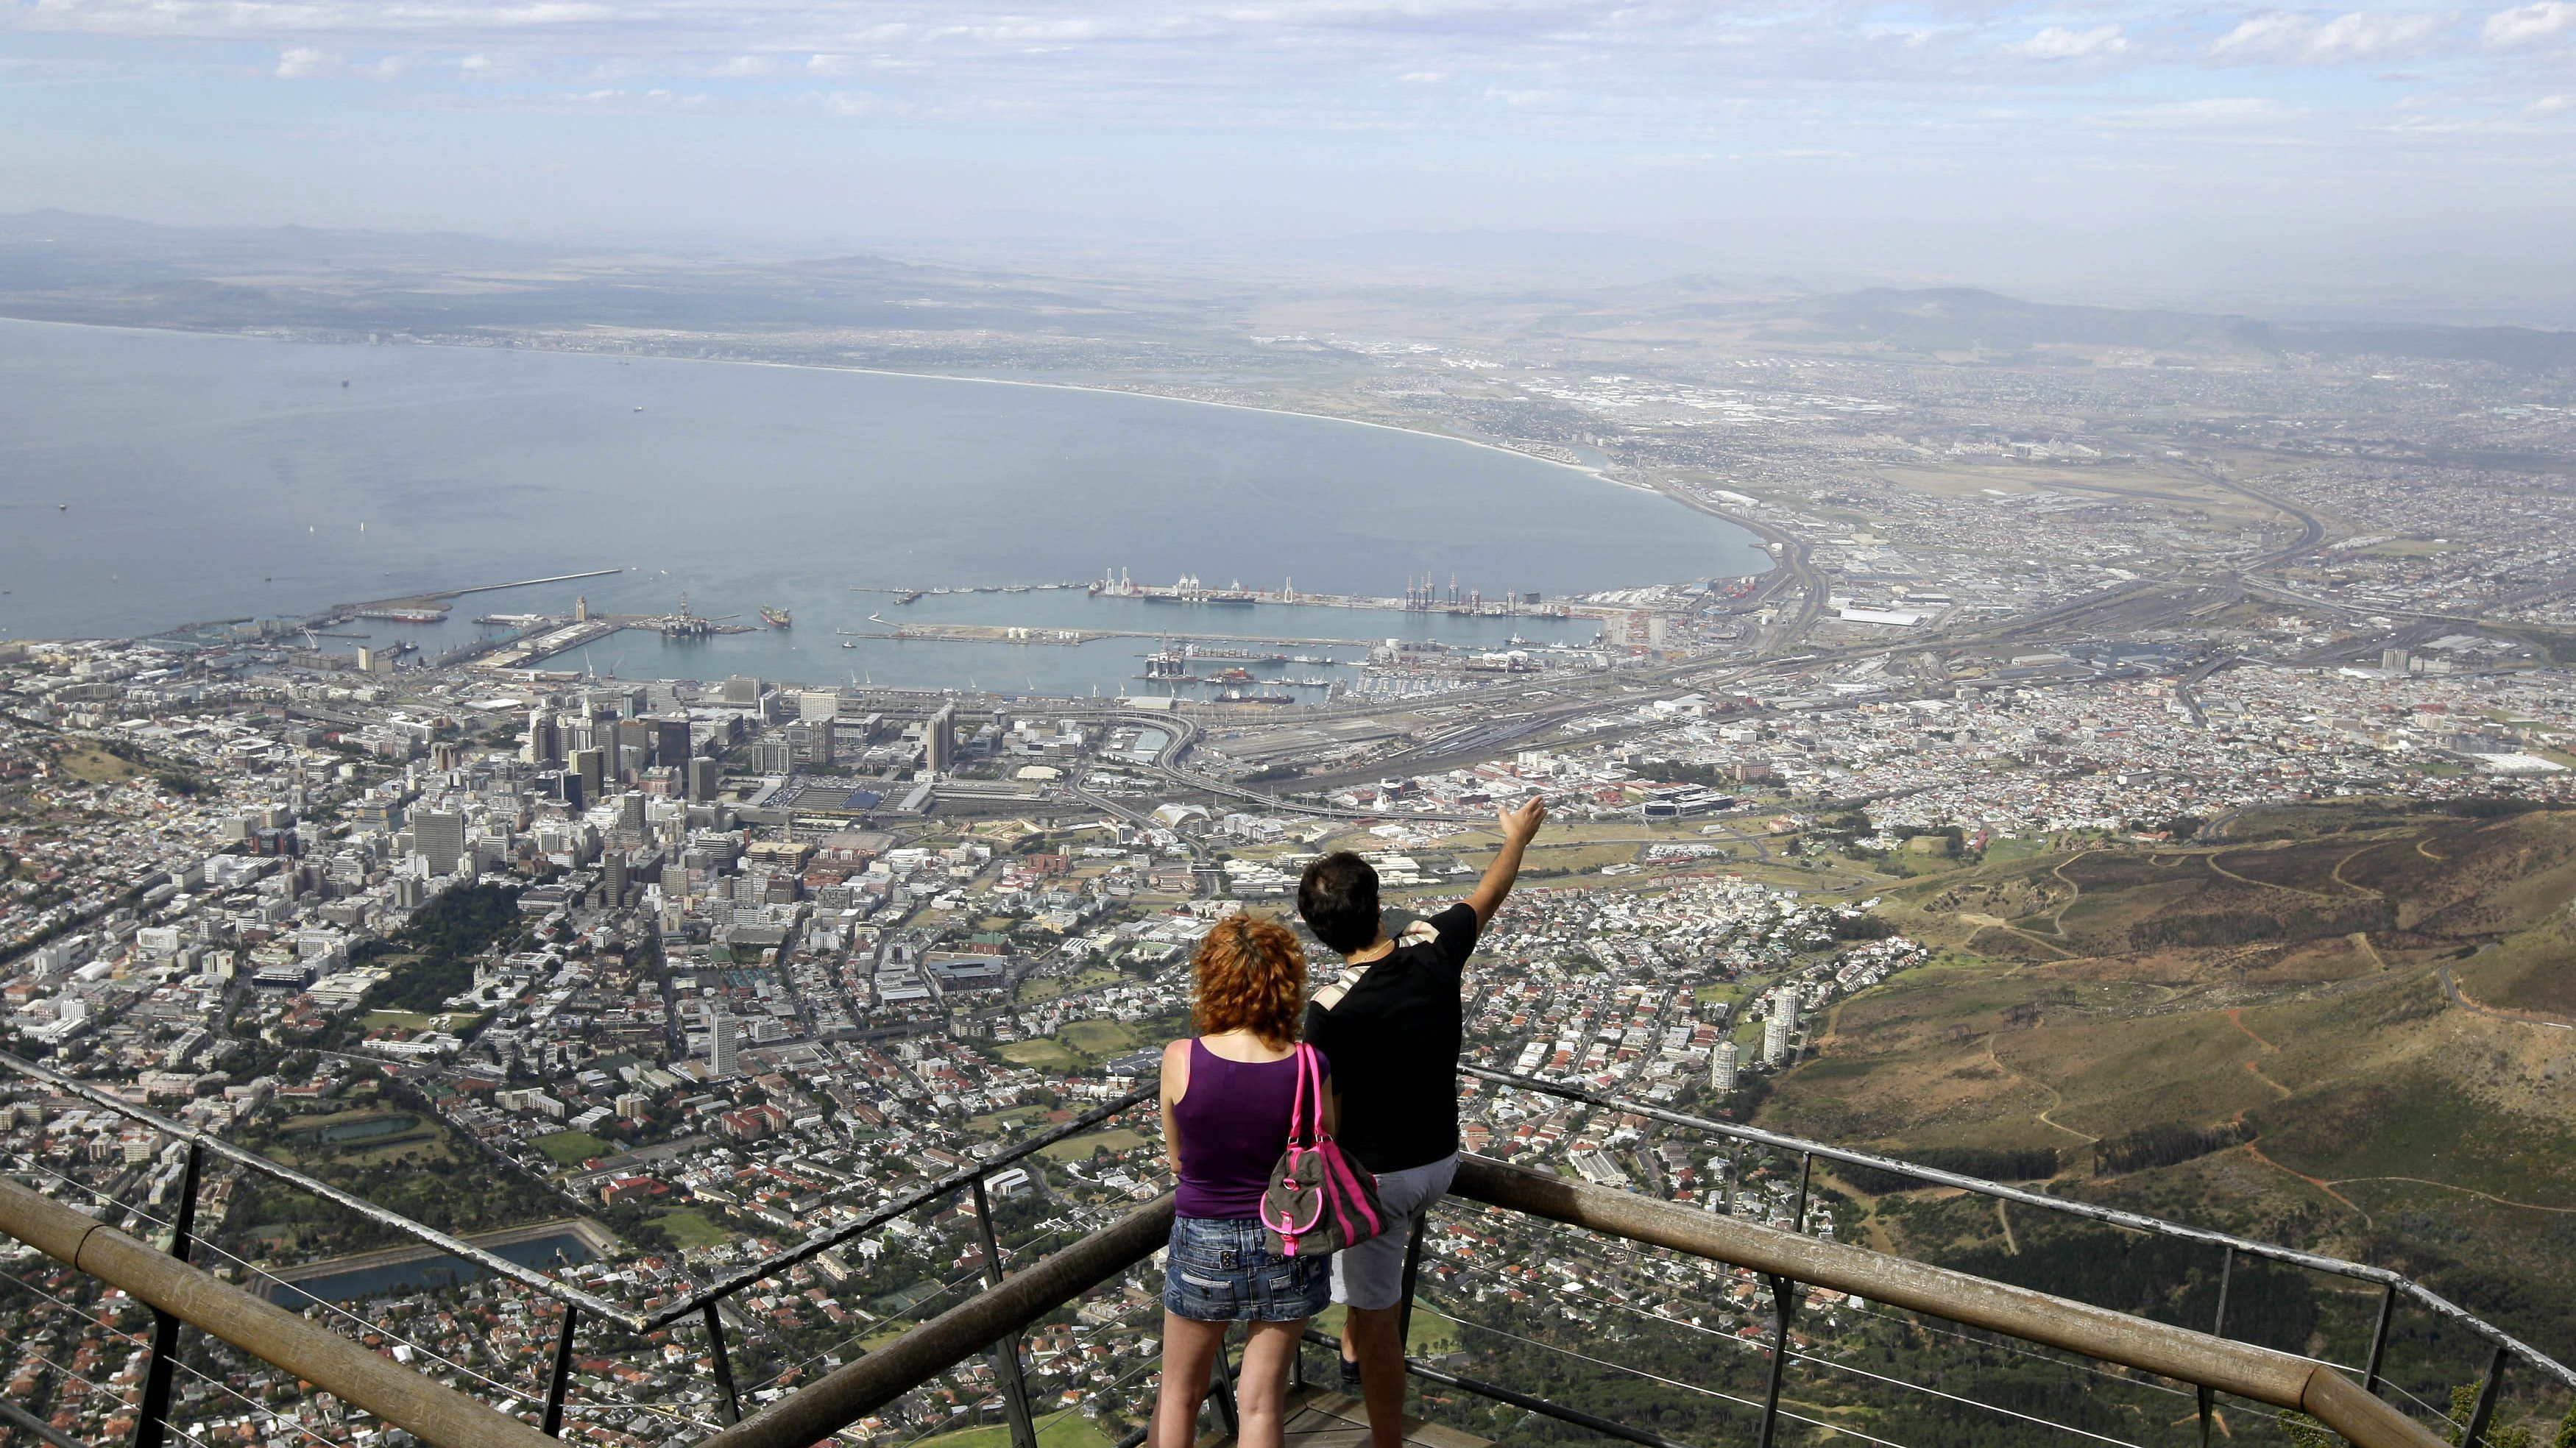 South Africa is working on a plan to decide which countries' tourists to allow visit